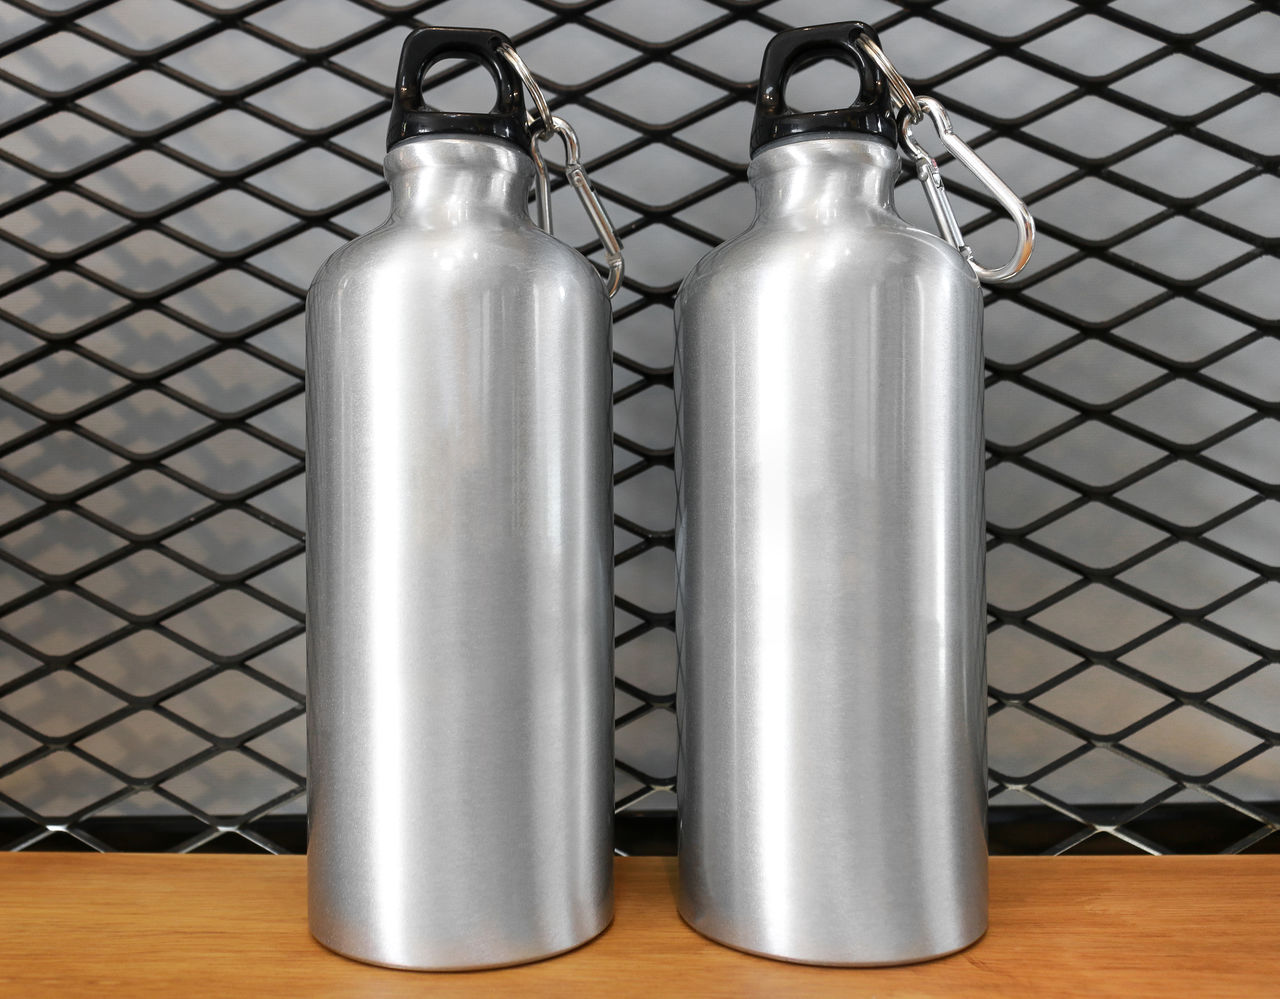 metal, indoors, silver colored, no people, close-up, still life, two objects, pattern, alloy, container, table, technology, steel, food and drink, single object, bottle, design, empty, equipment, silver - metal